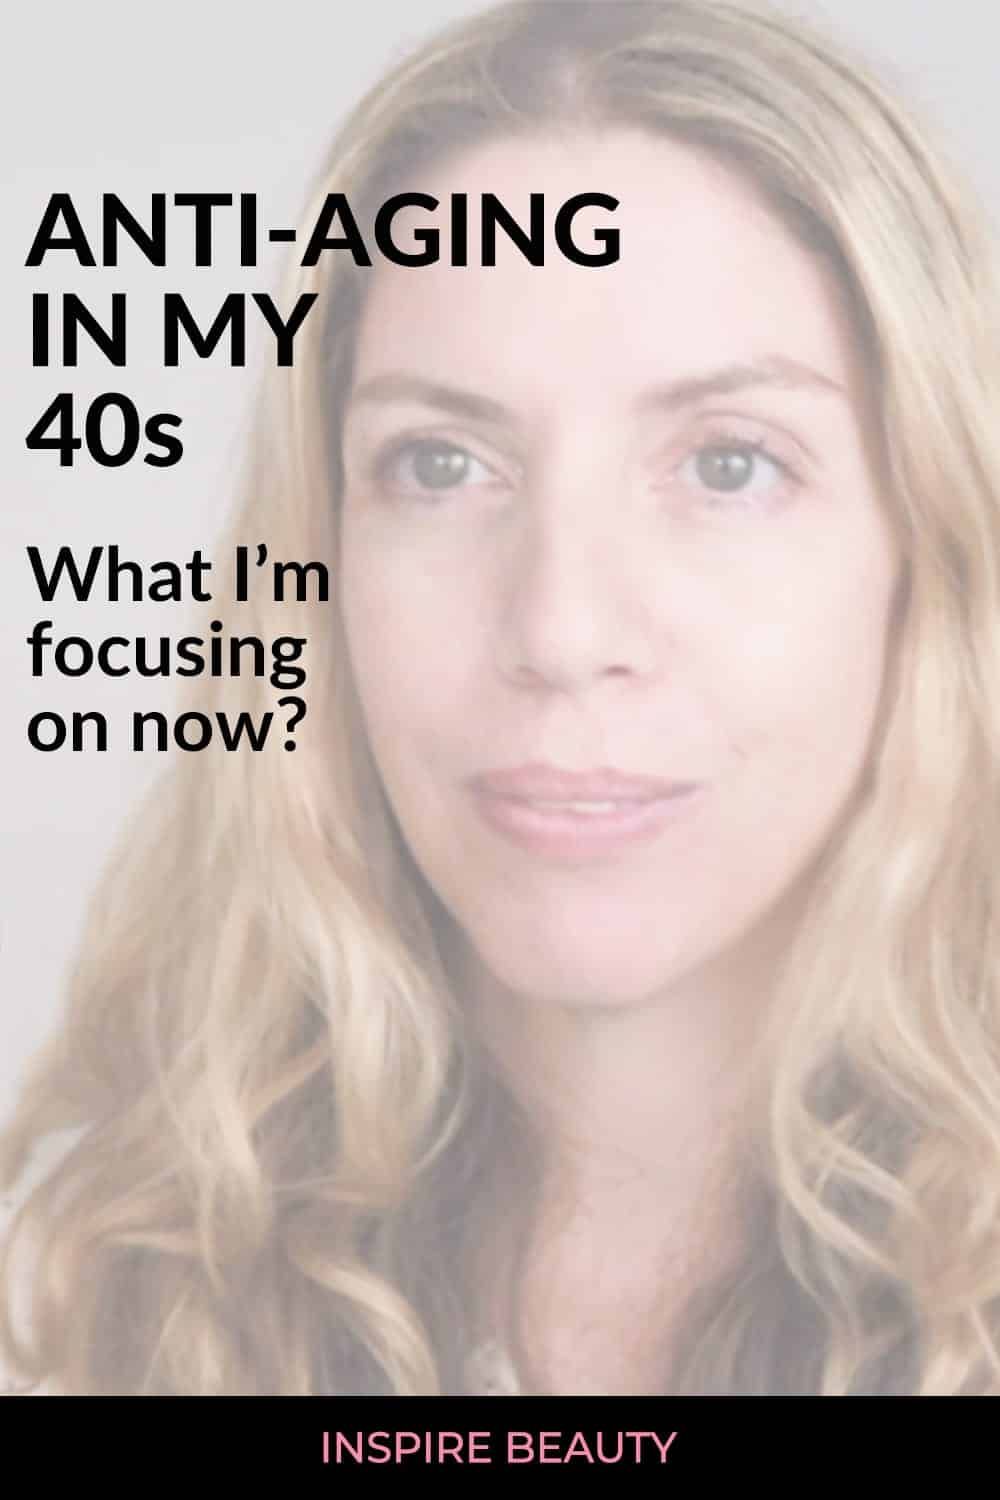 Anti-aging in my 40s, how am I taking care of my skin and body to stay young